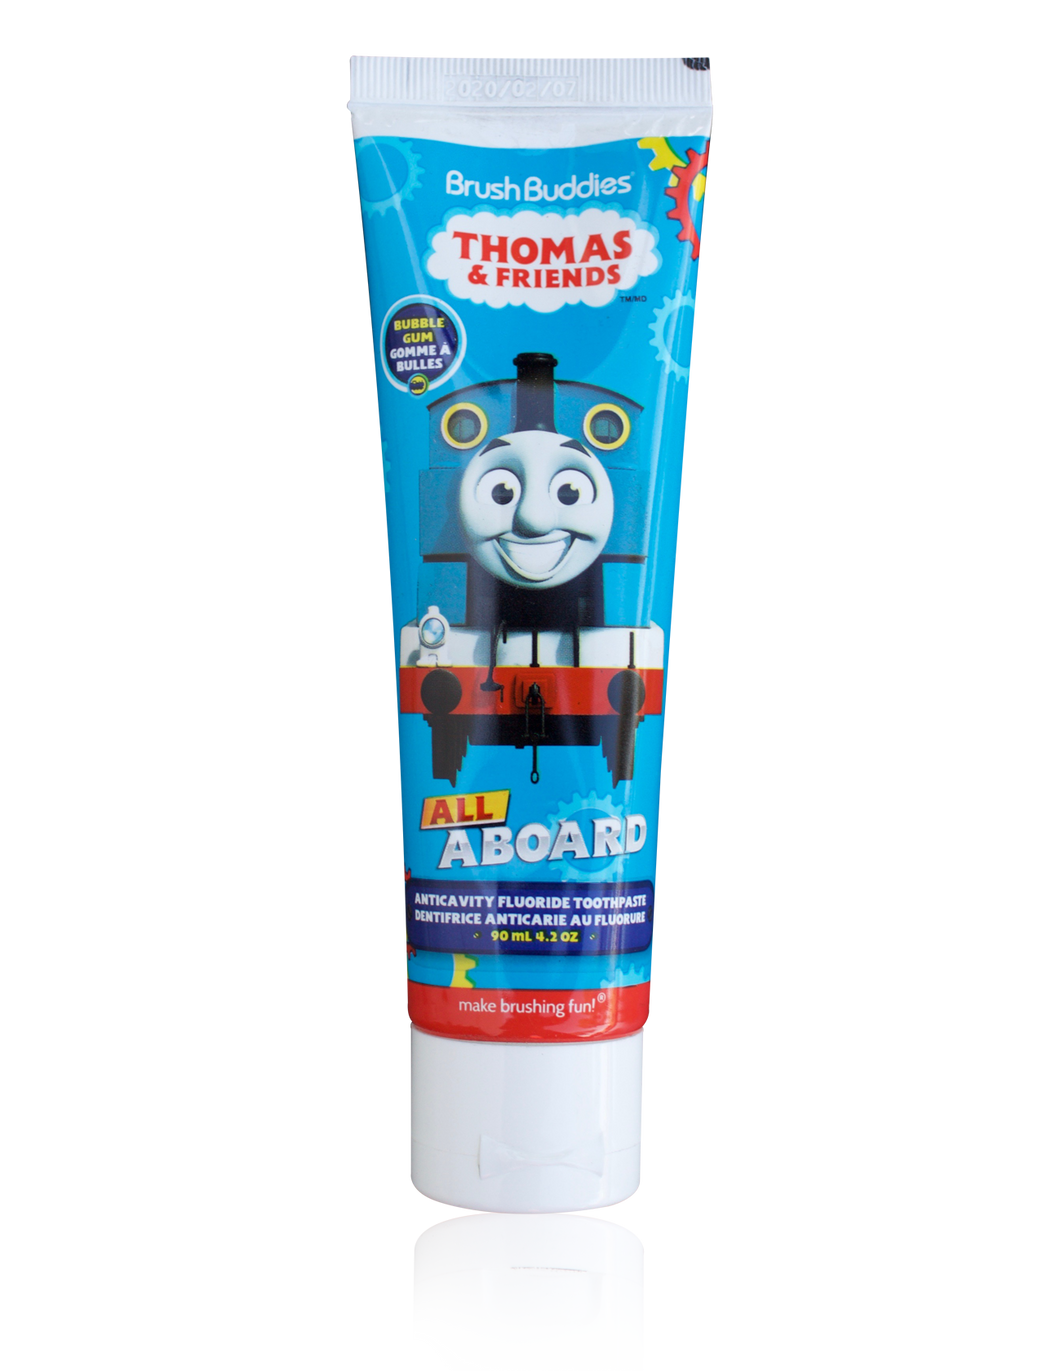 Brush Buddies Thomas & Friends Toothpaste 4.2 oz